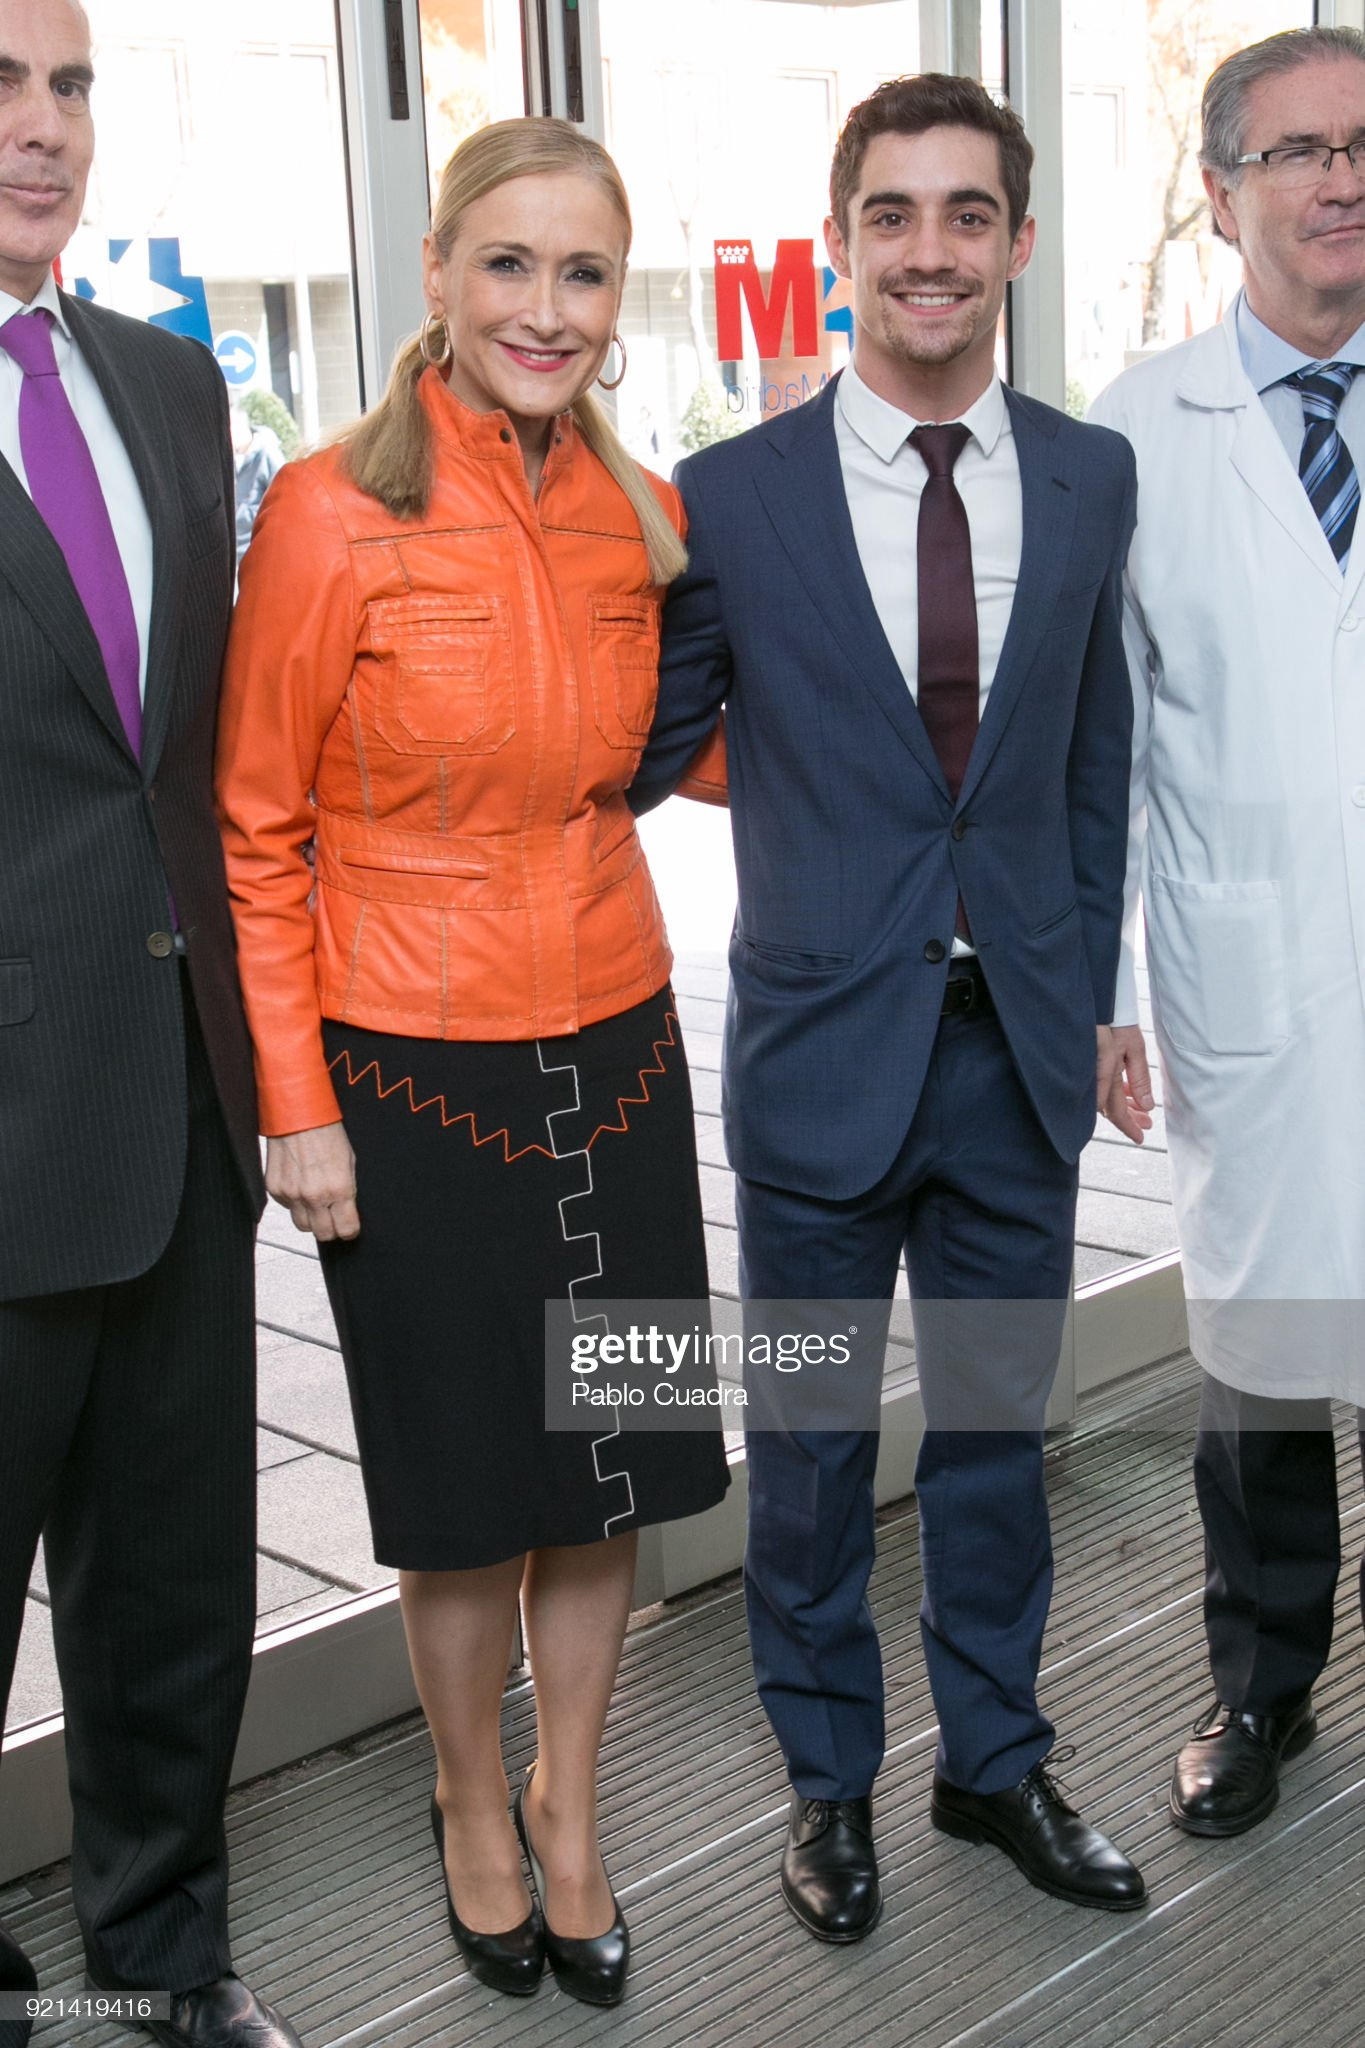 ¿Cuánto mide Cristina Cifuentes? - Altura Cristina-cifuentes-and-figure-skater-javier-fernandez-visit-the-to-picture-id921419416?s=2048x2048